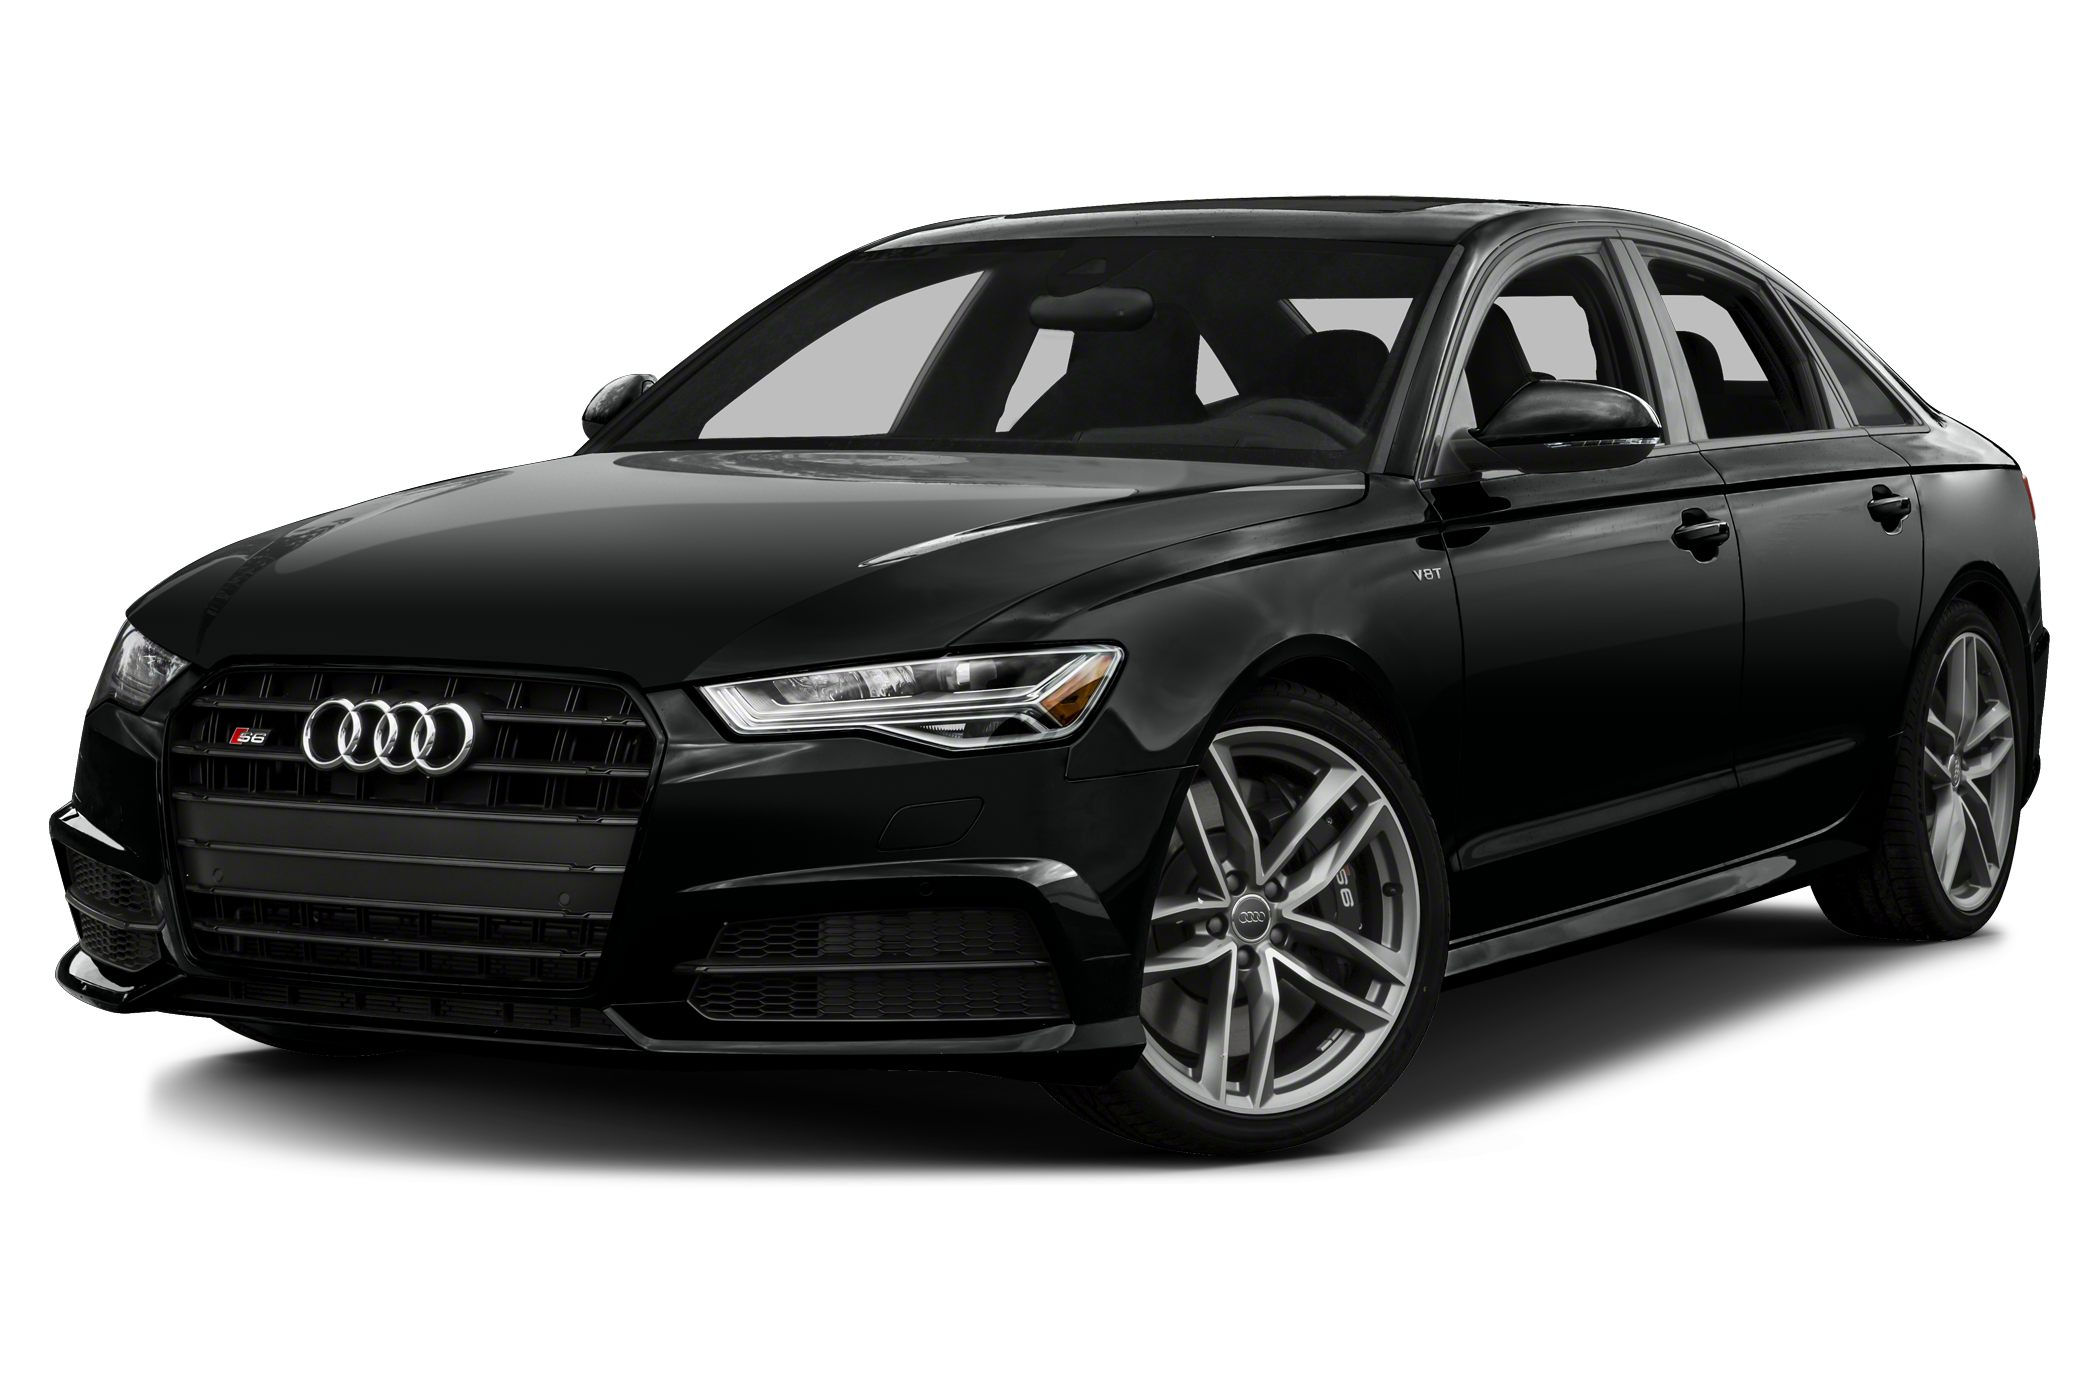 2016 audi s6. Black Bedroom Furniture Sets. Home Design Ideas